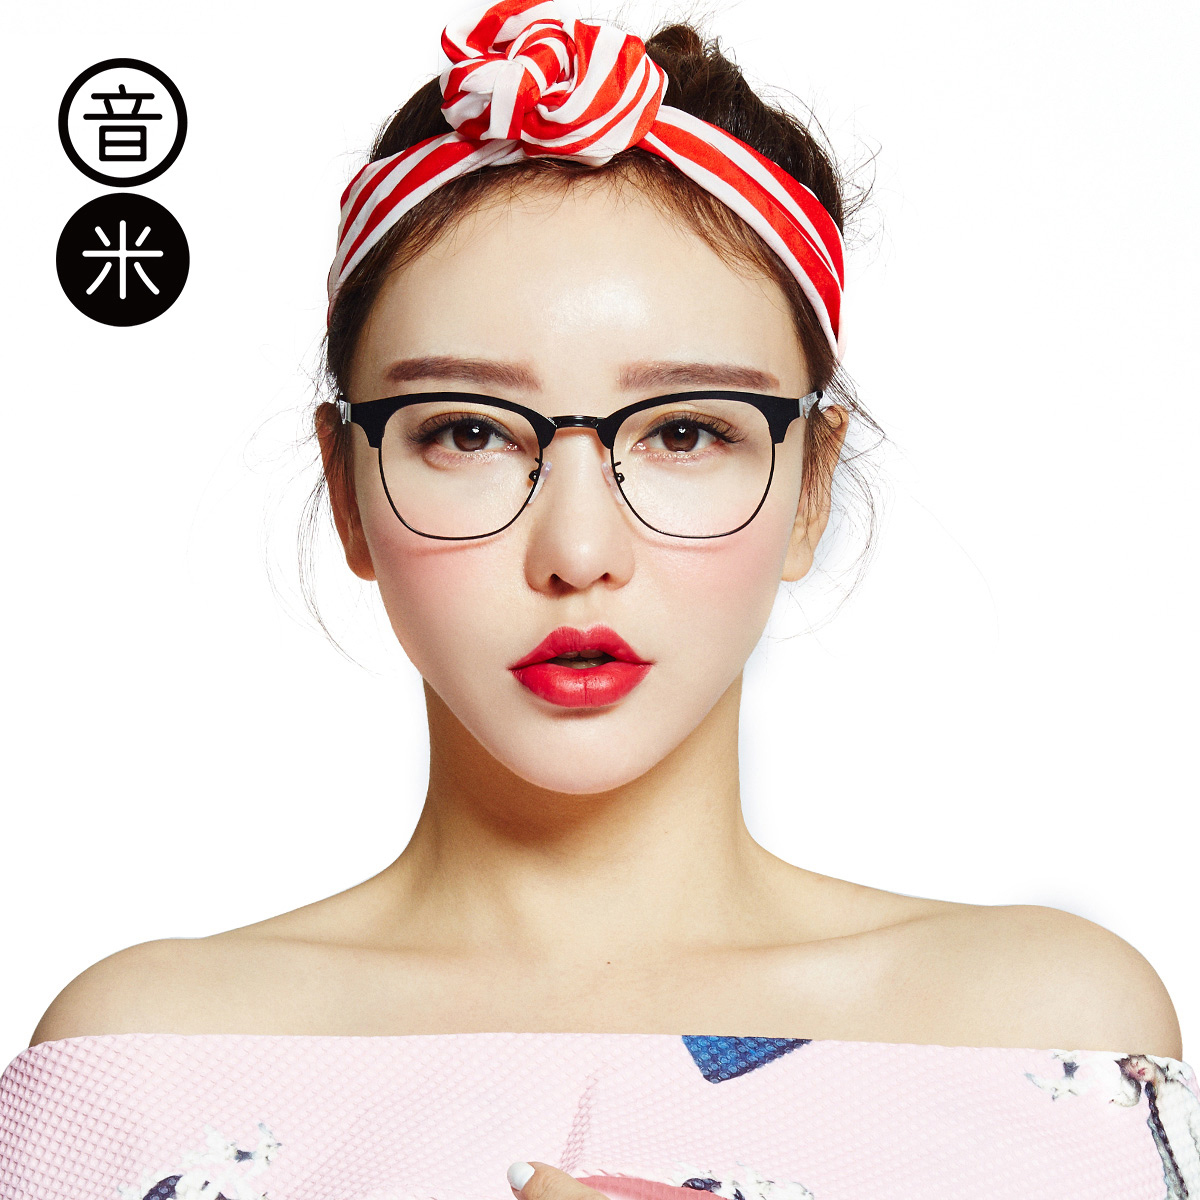 6cba9c4d96 Get Quotations · Sound meter 2015 new full frame square metal frame glasses  male fashion trend glasses frame glasses